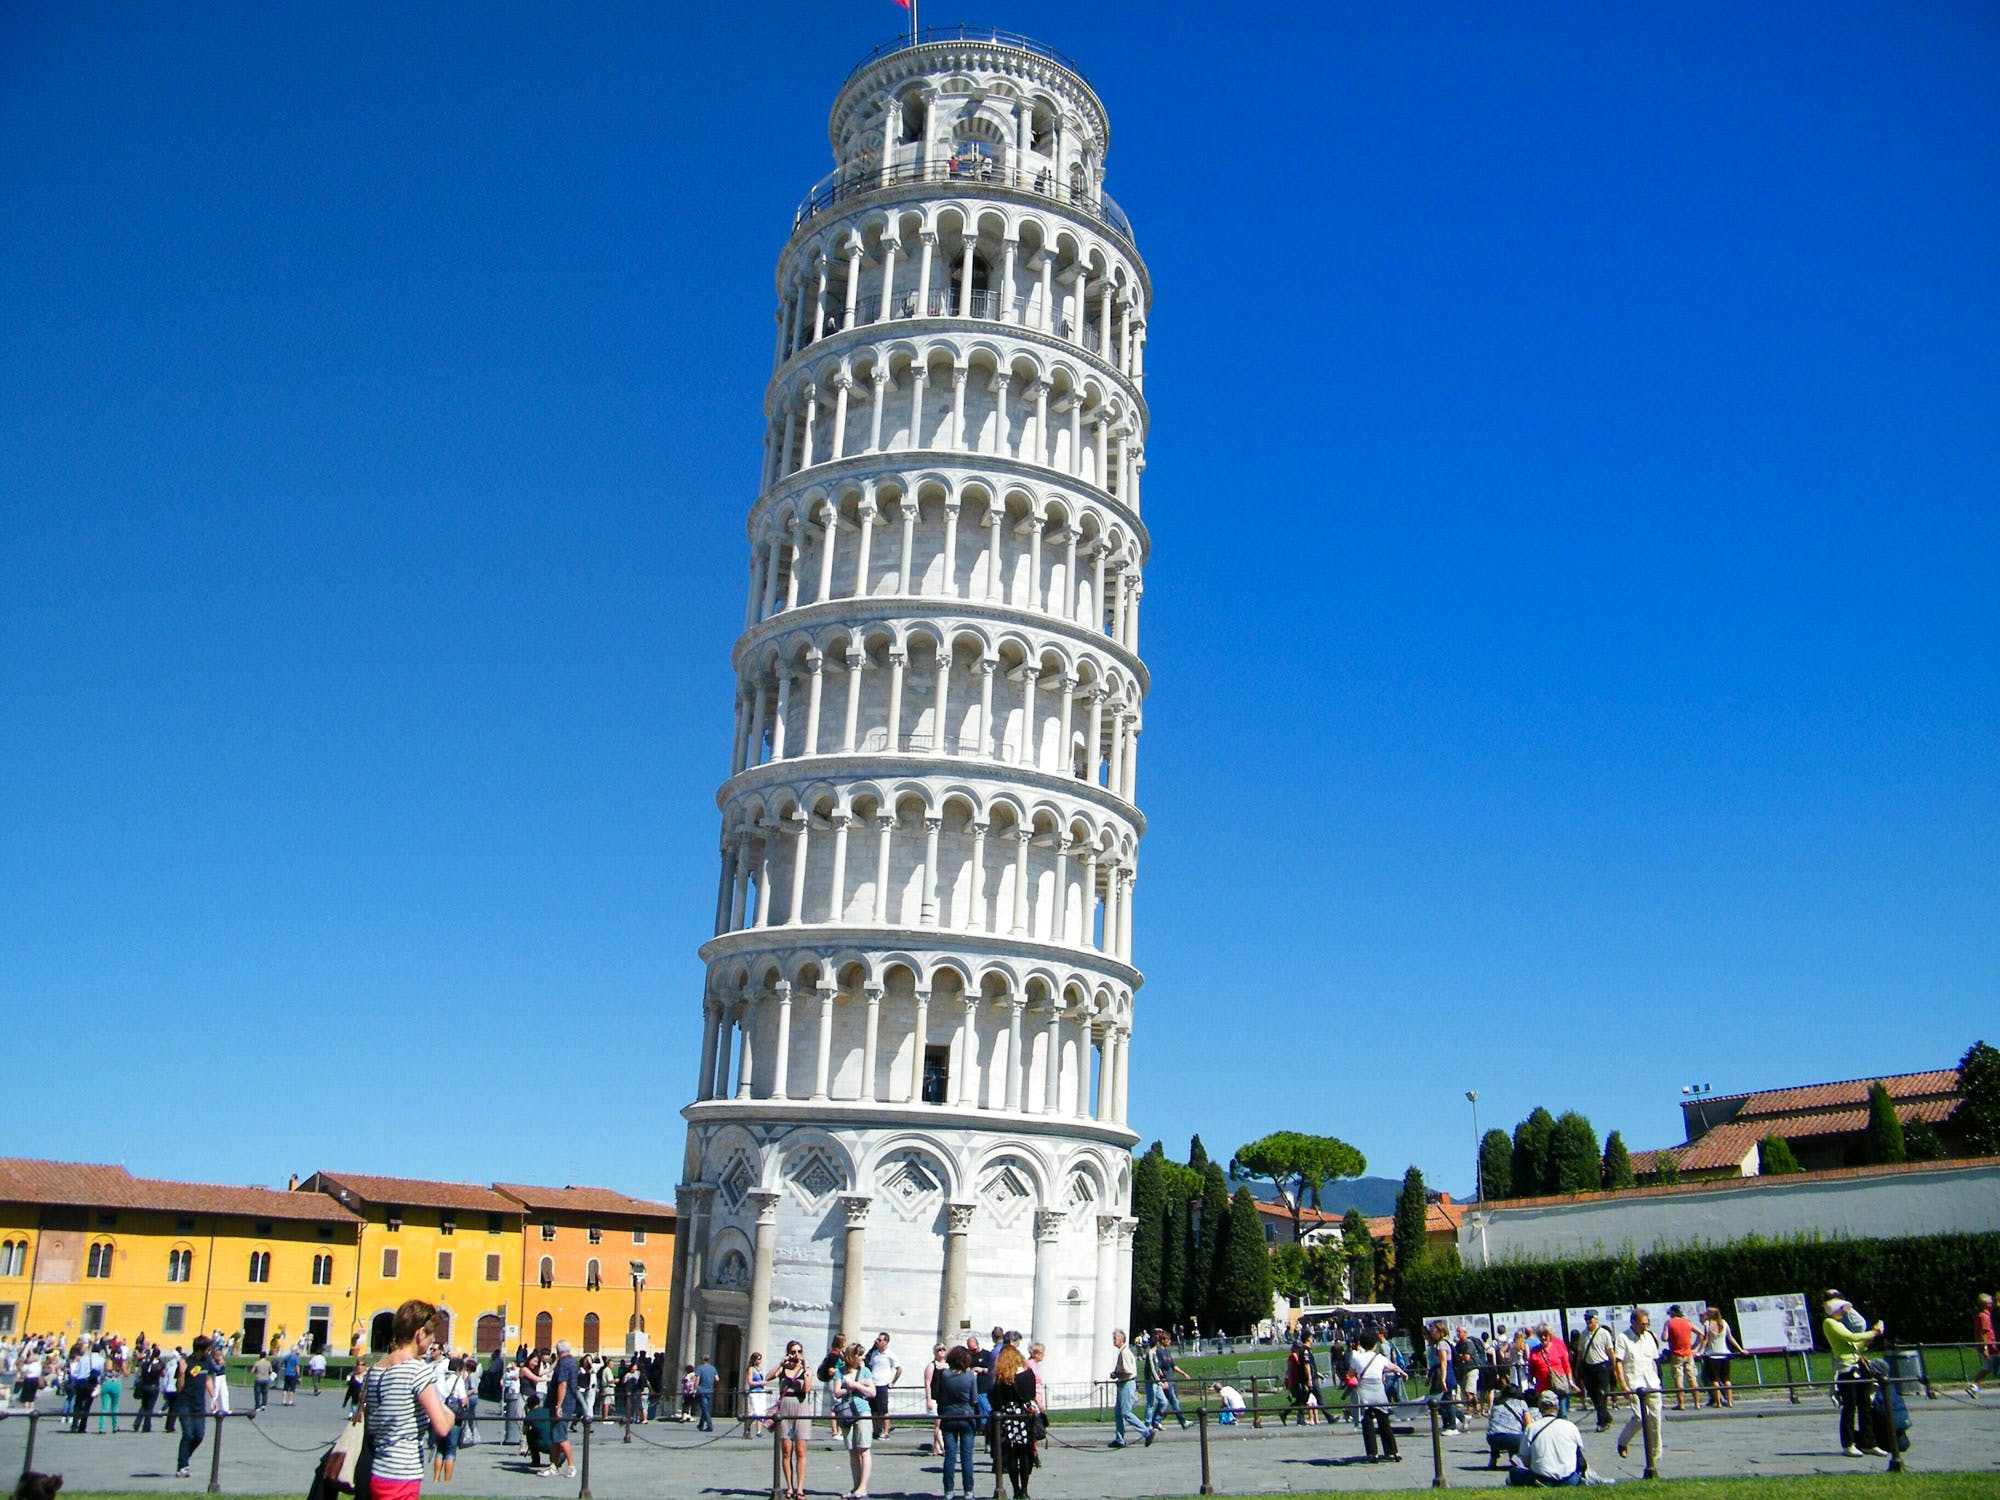 Visit The Leaning Tower Of Pisa Climb To The Top Of The Leaning Tower Of Pisa